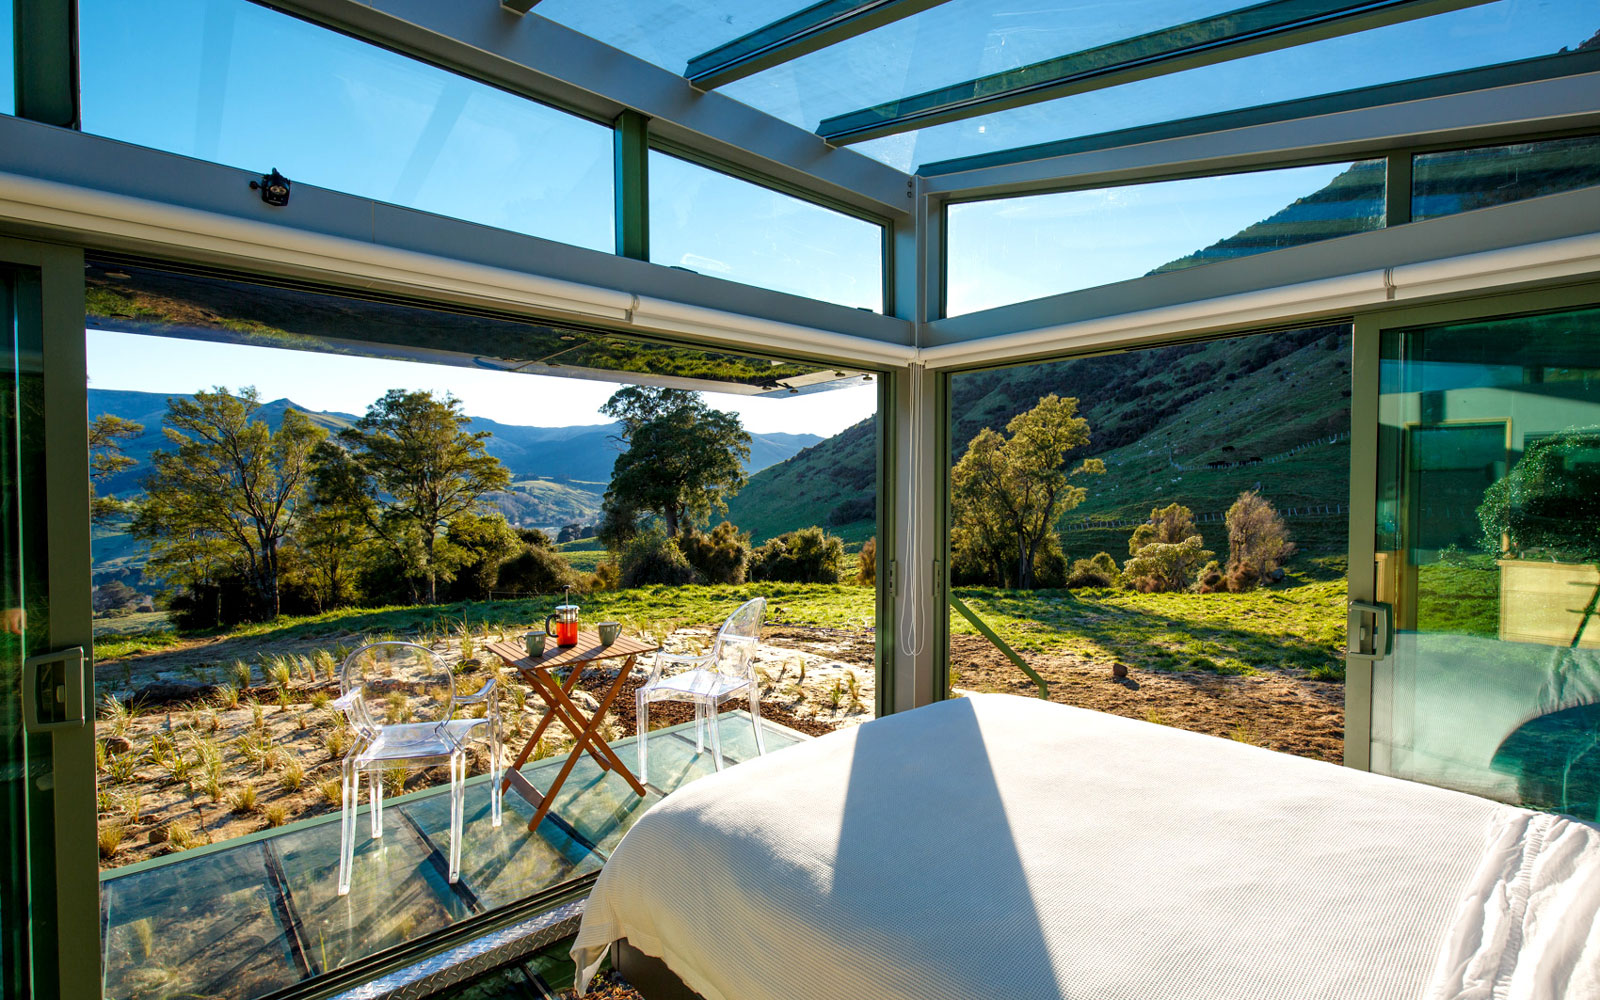 Stay in an All-glass Cabin in New Zealand and Become One With Nature